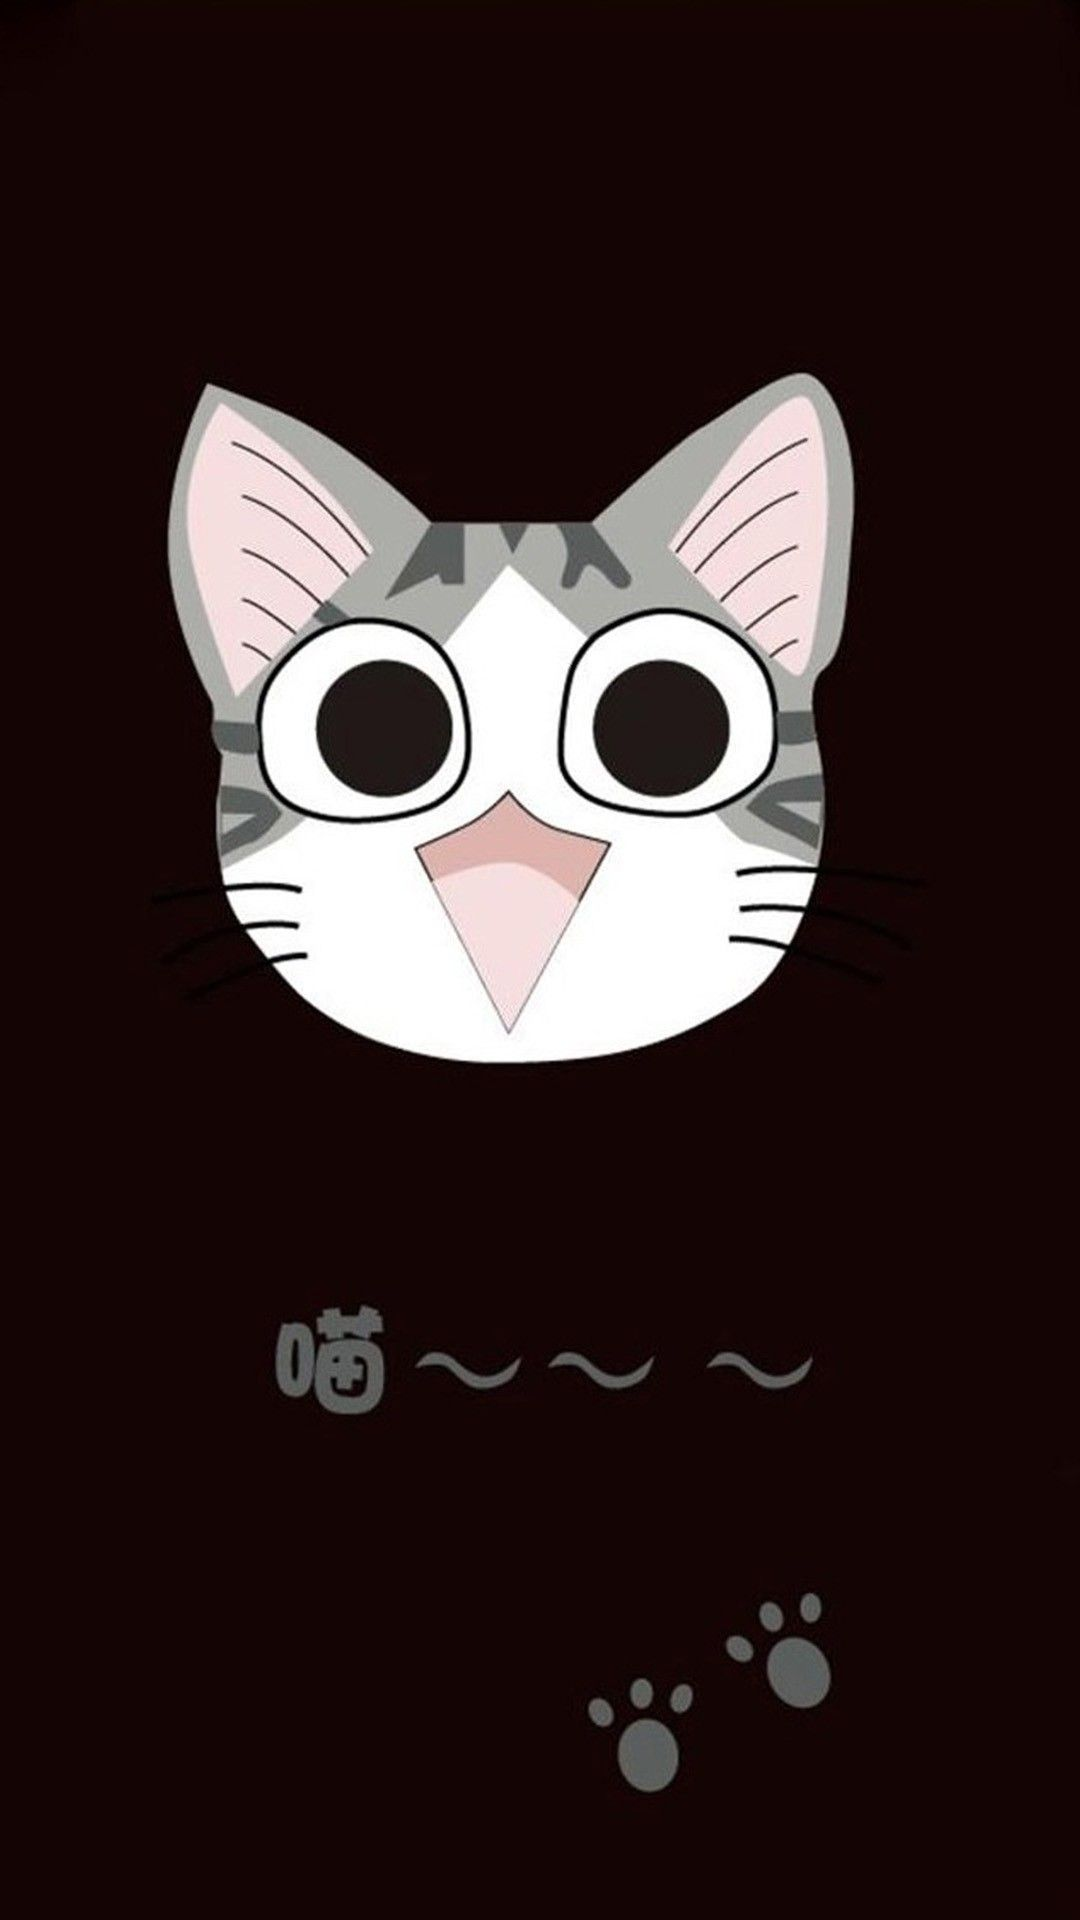 Wallpaper Kartun Cute Cute Wallpaper For Samsung Edge